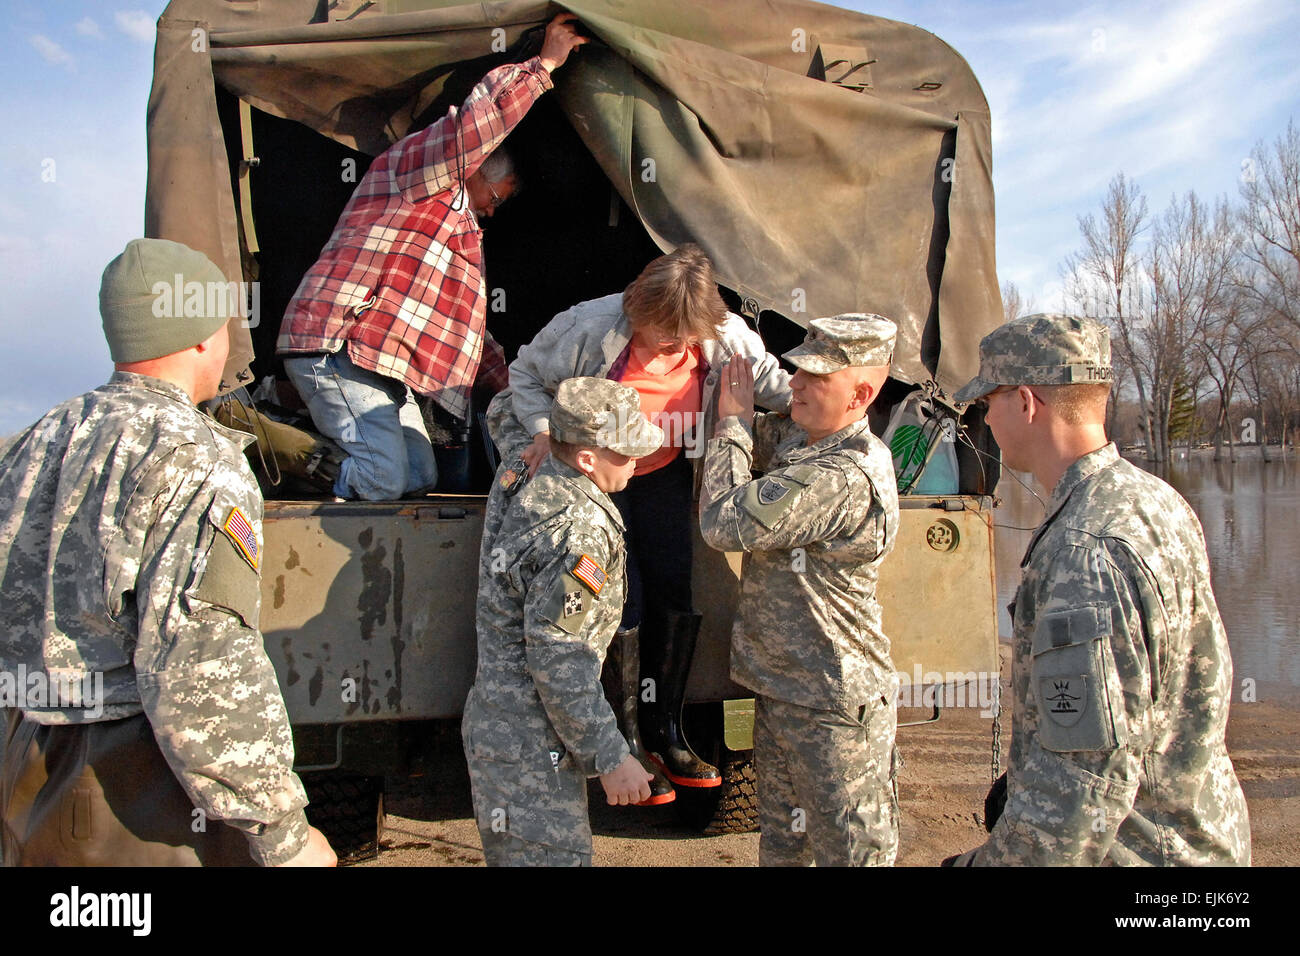 North Dakota National Guard soldiers evacuated a campground site as they help fight flooding in Minot, N.D., April - Stock Image